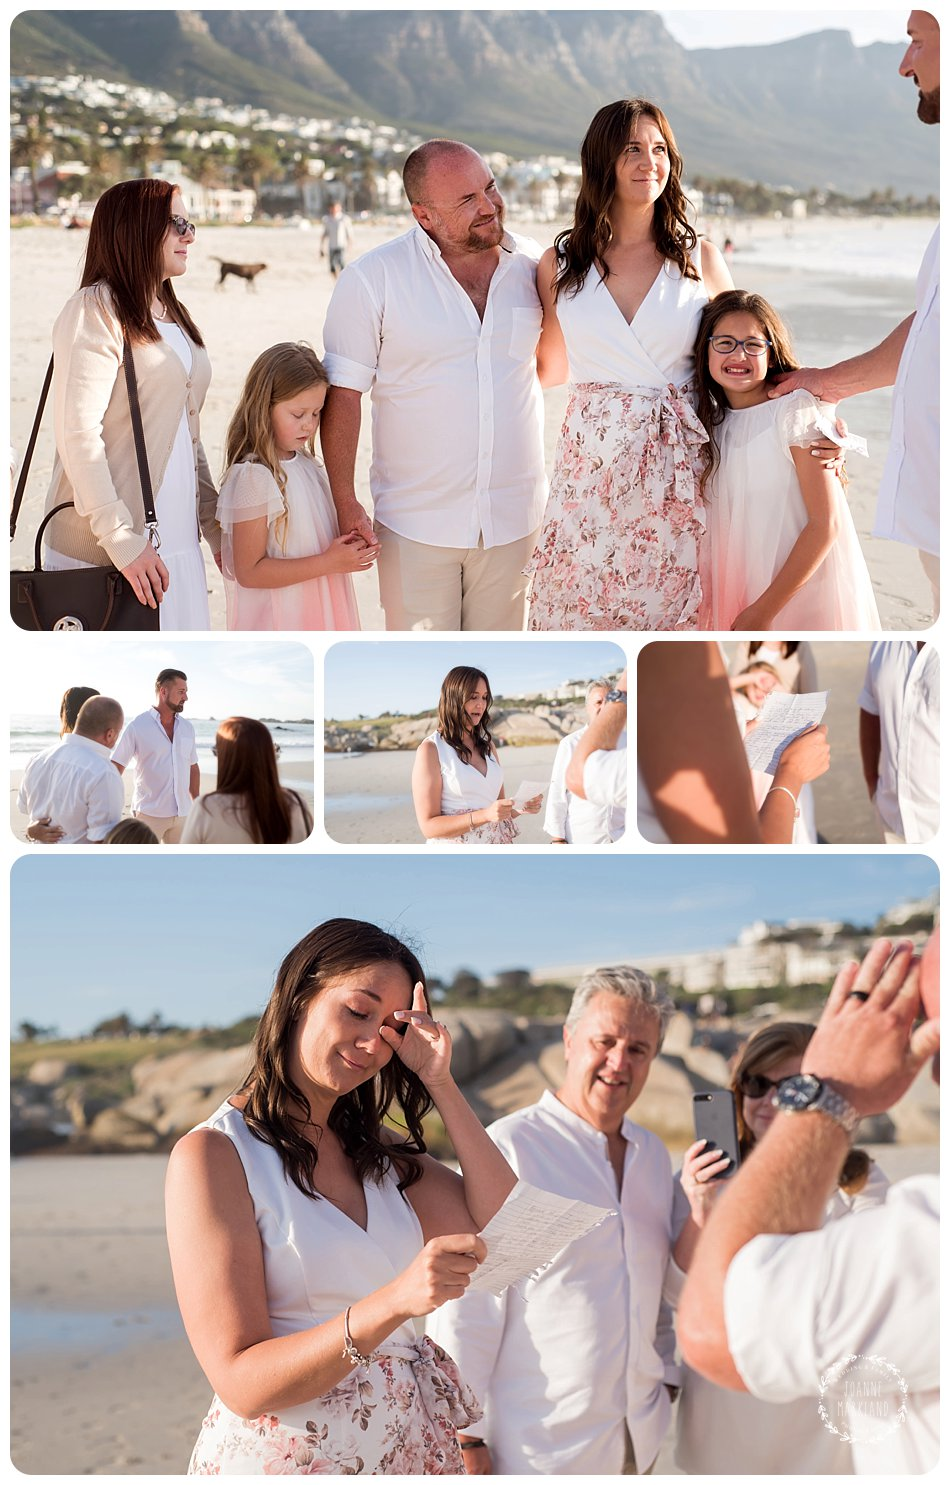 campsbay family photoshoot on beach by cape town photographer Joanne Markland photography